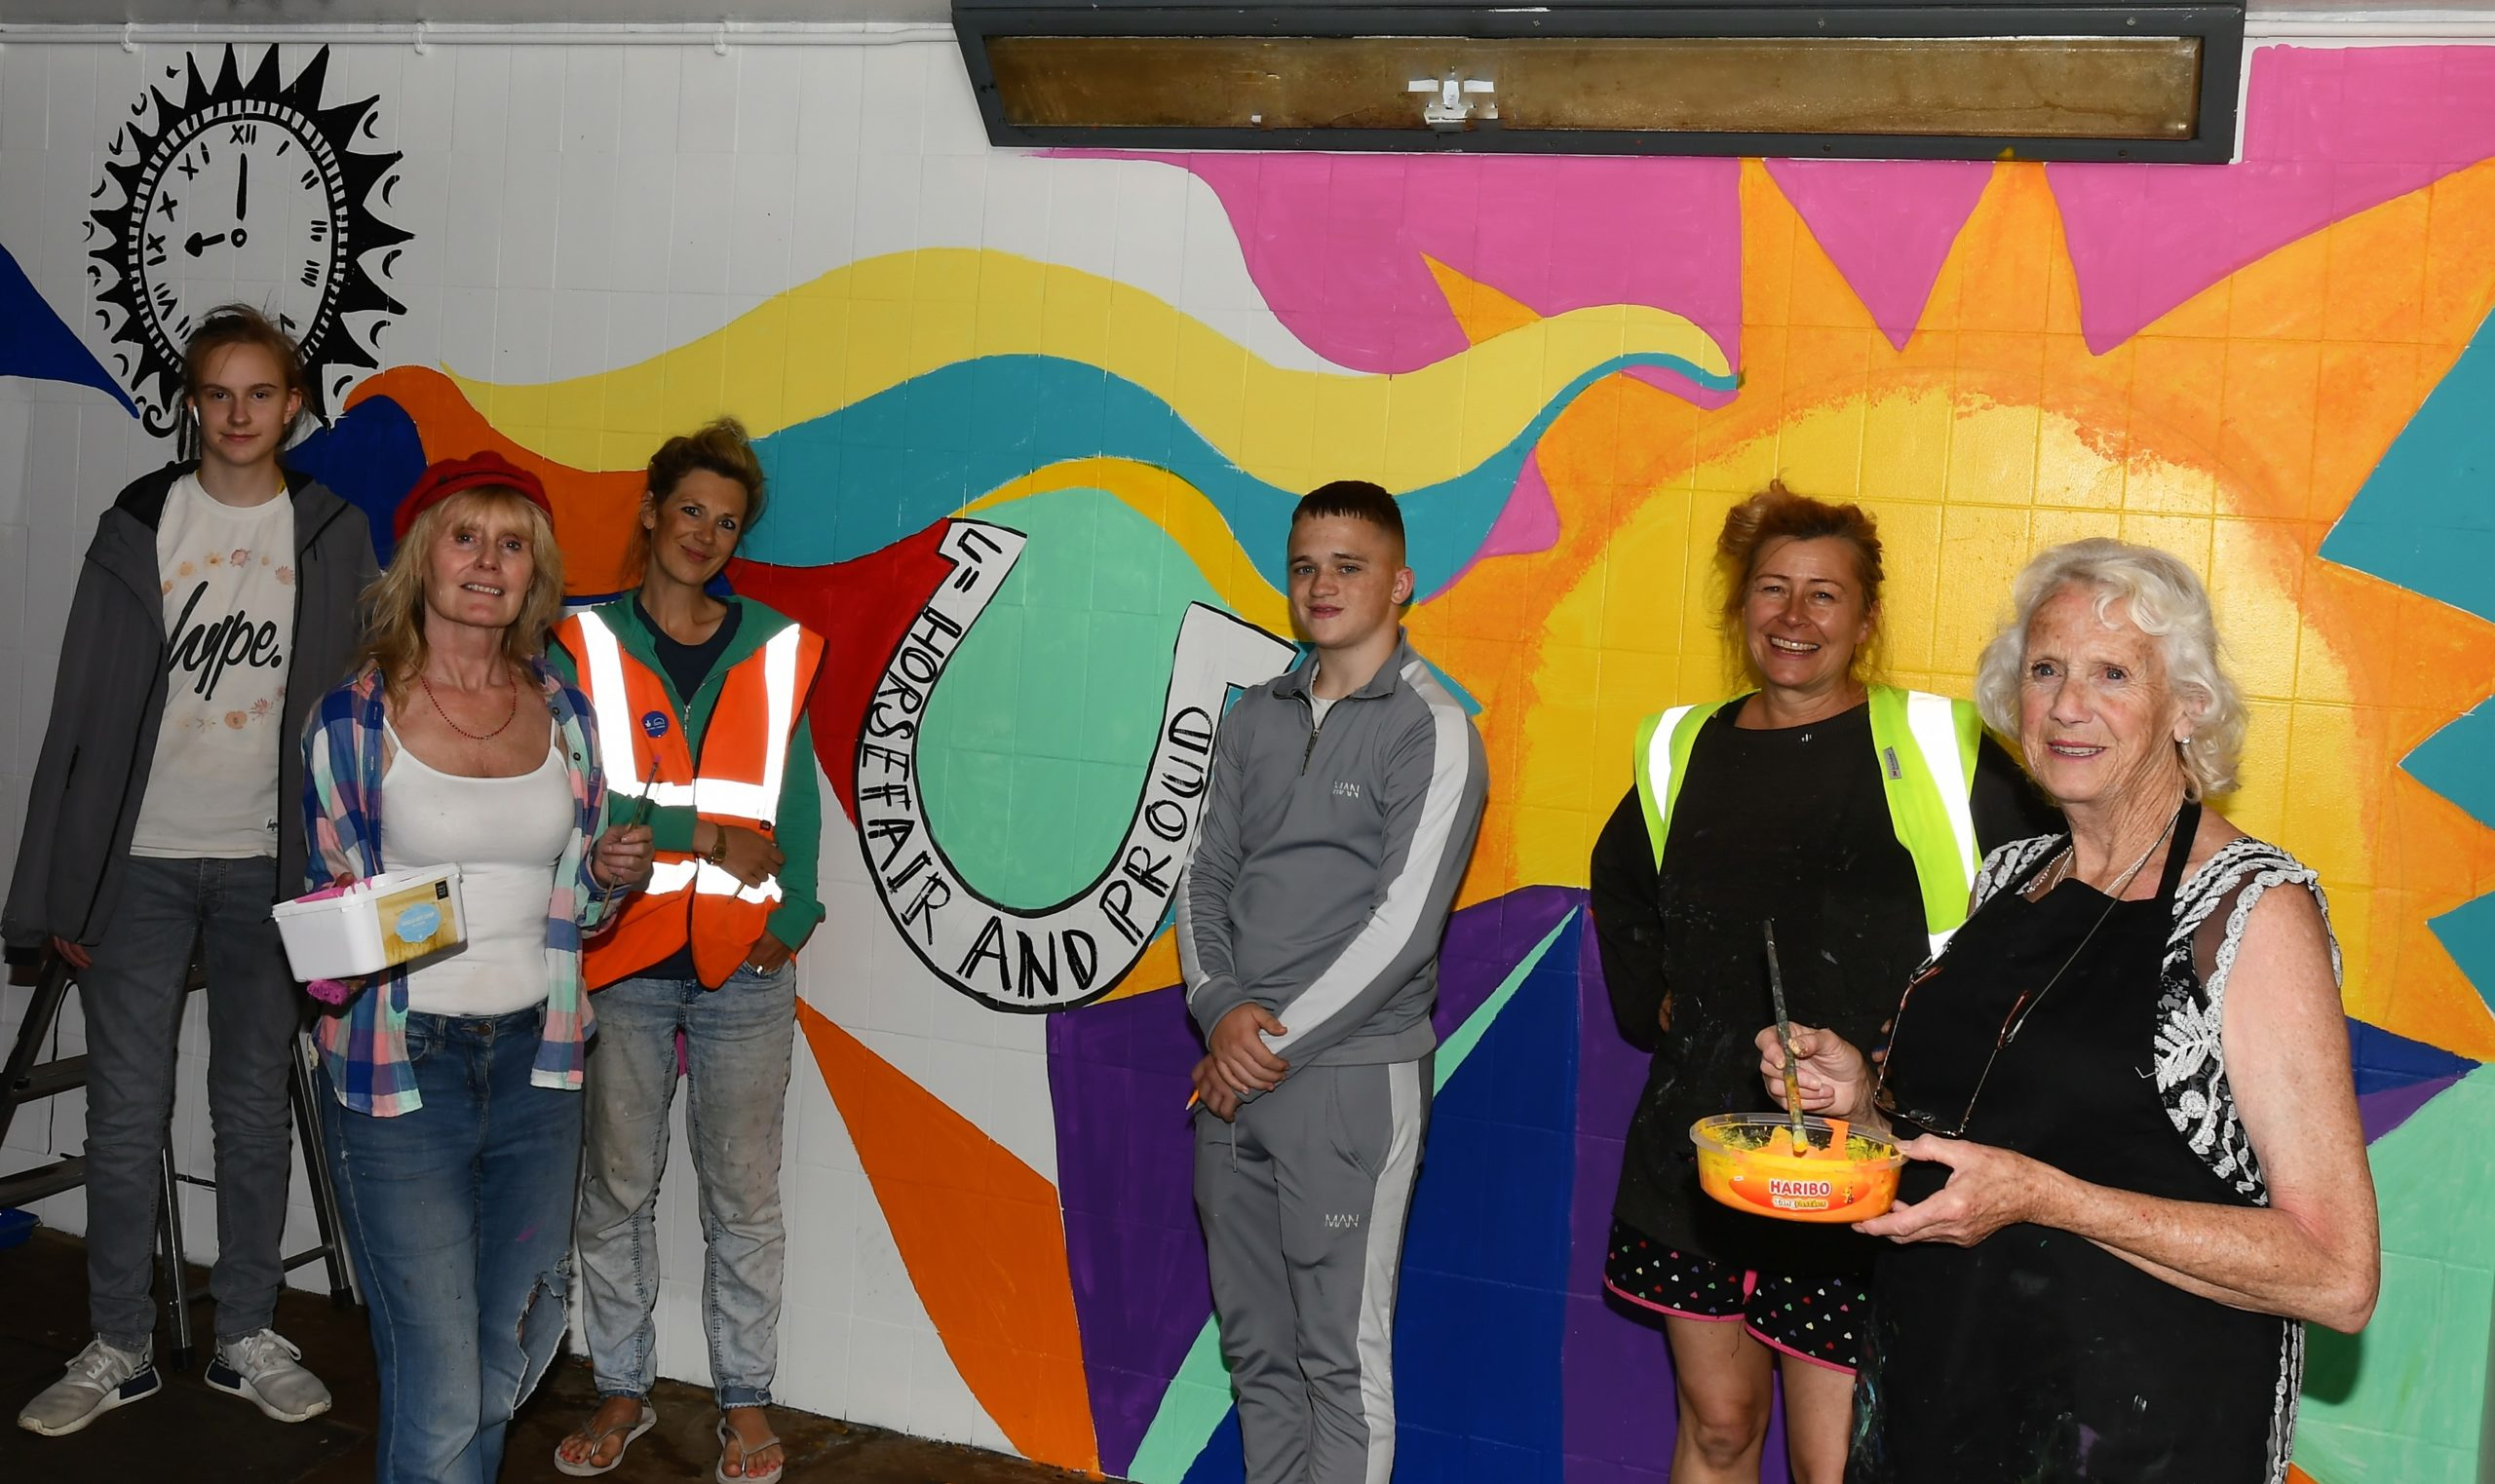 Pictured are: (left to right): Xander (Kidderminster College art student), Dawn (Horsefair and Proud community group), Sarah (Spare Room Arts), Kian (Kidderminster College art student), Kate (Clik Clik Collective) and Dot (Horsefair and Proud volunteer)